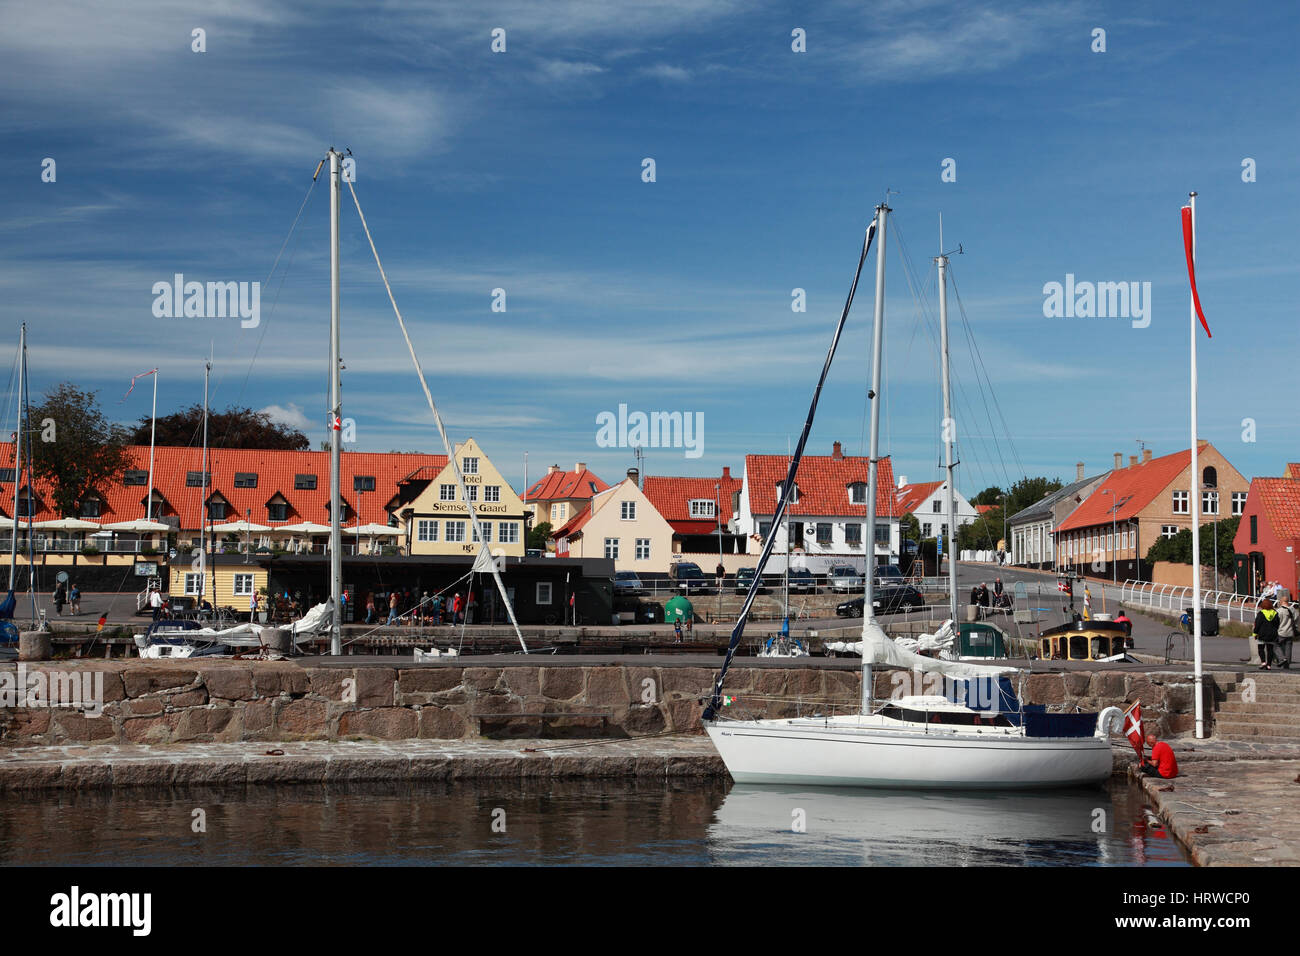 Fishing boats moored in the harbour at Svaneke, a small town on the east coast of the Baltic island of Bornholm, Stock Photo